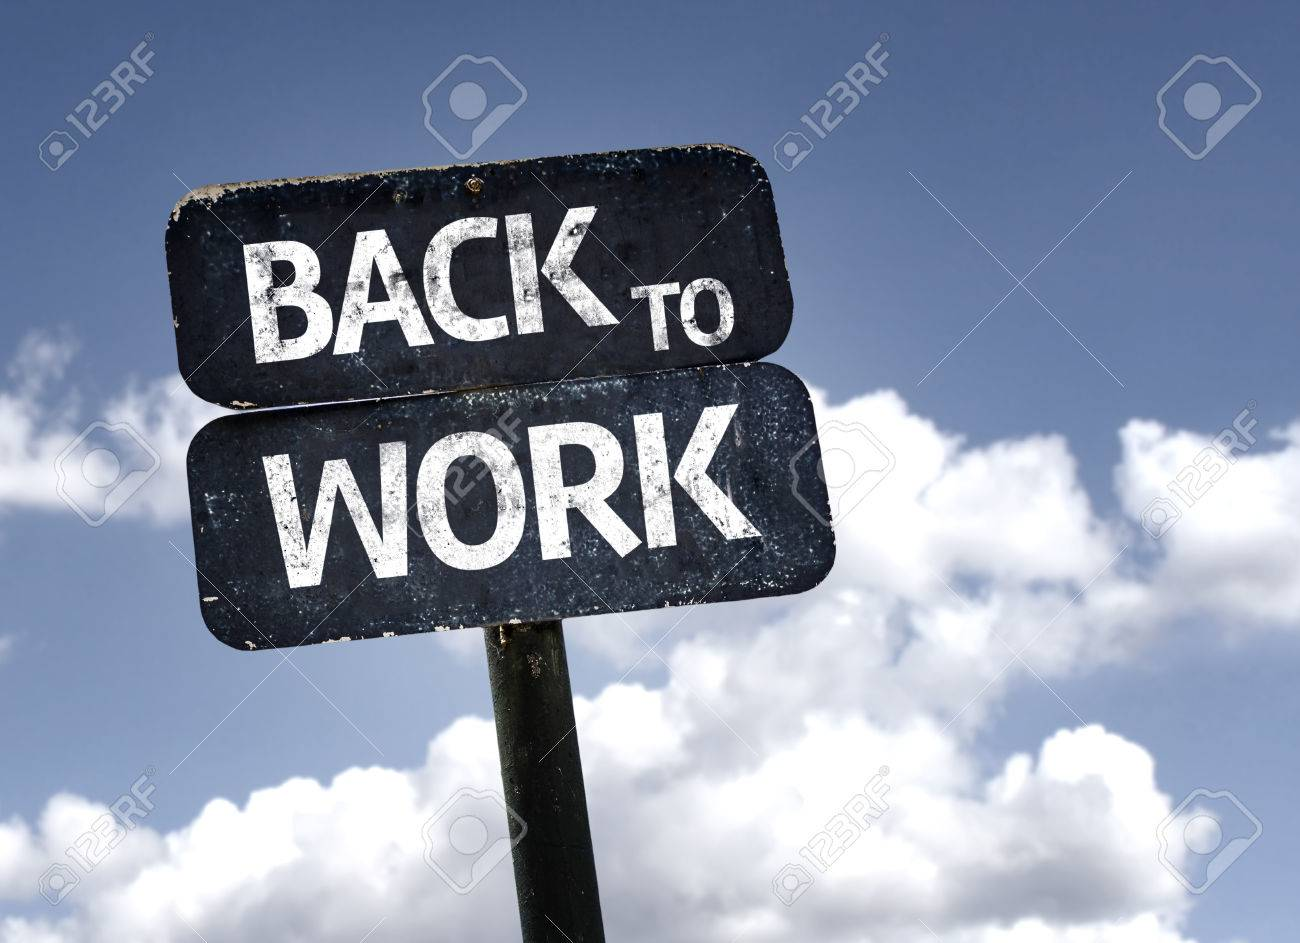 Back To Work sign with clouds and sky background - 55779256